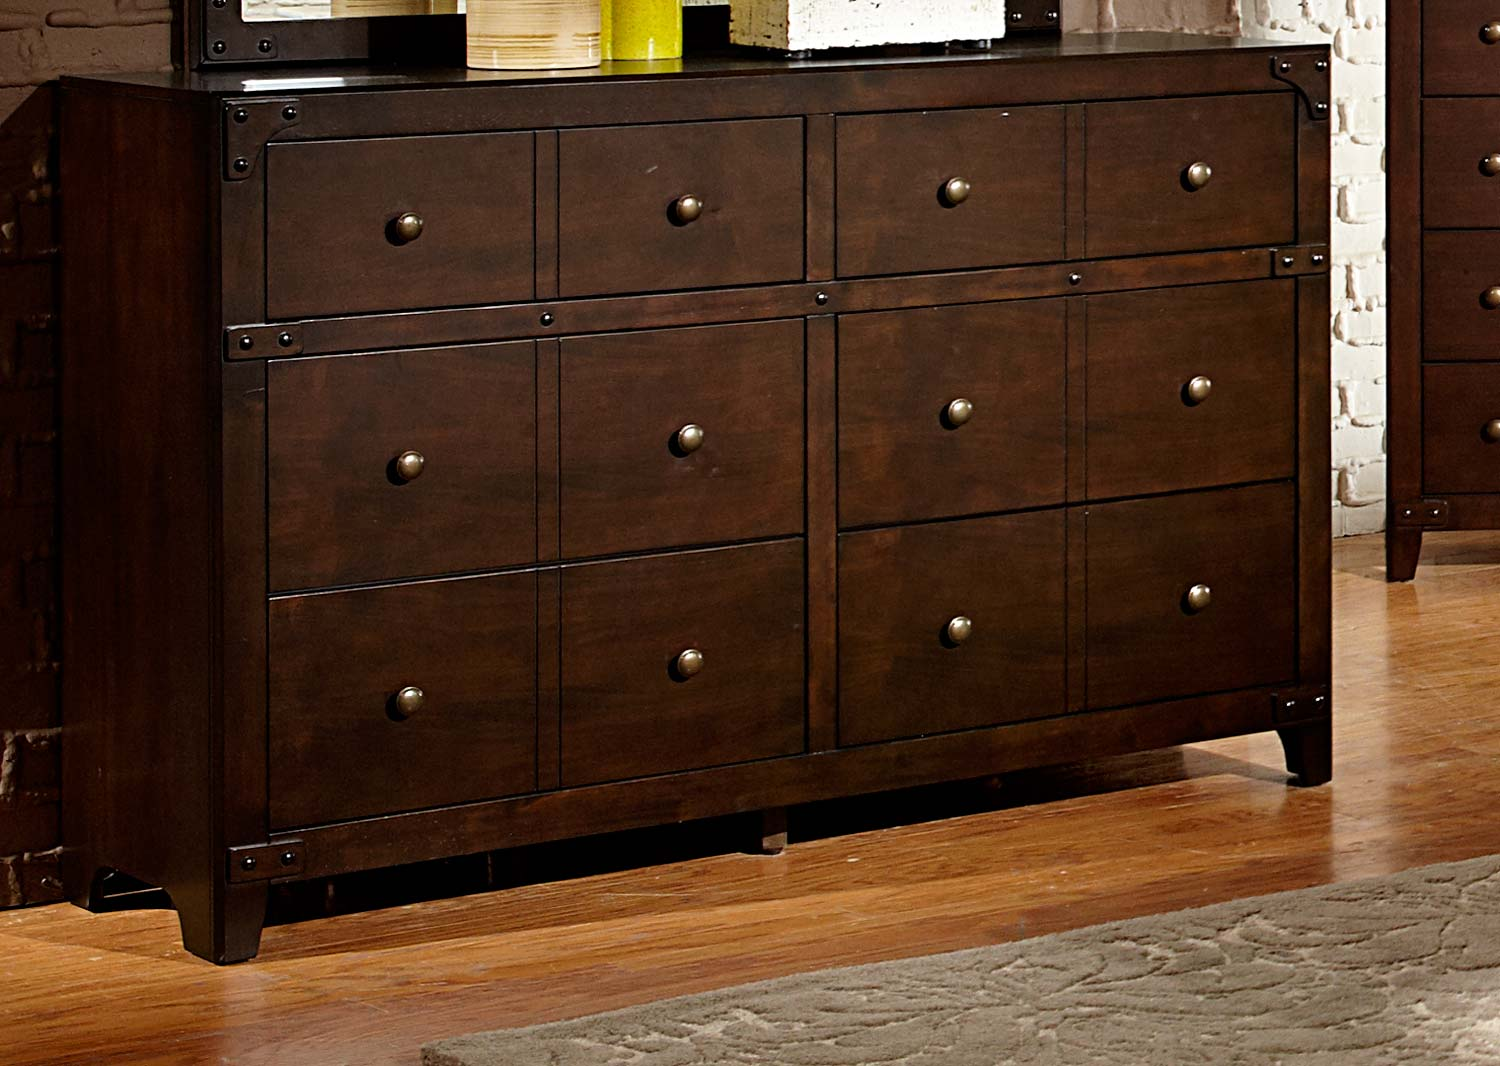 Homelegance Brawley Dresser - Brown Cherry